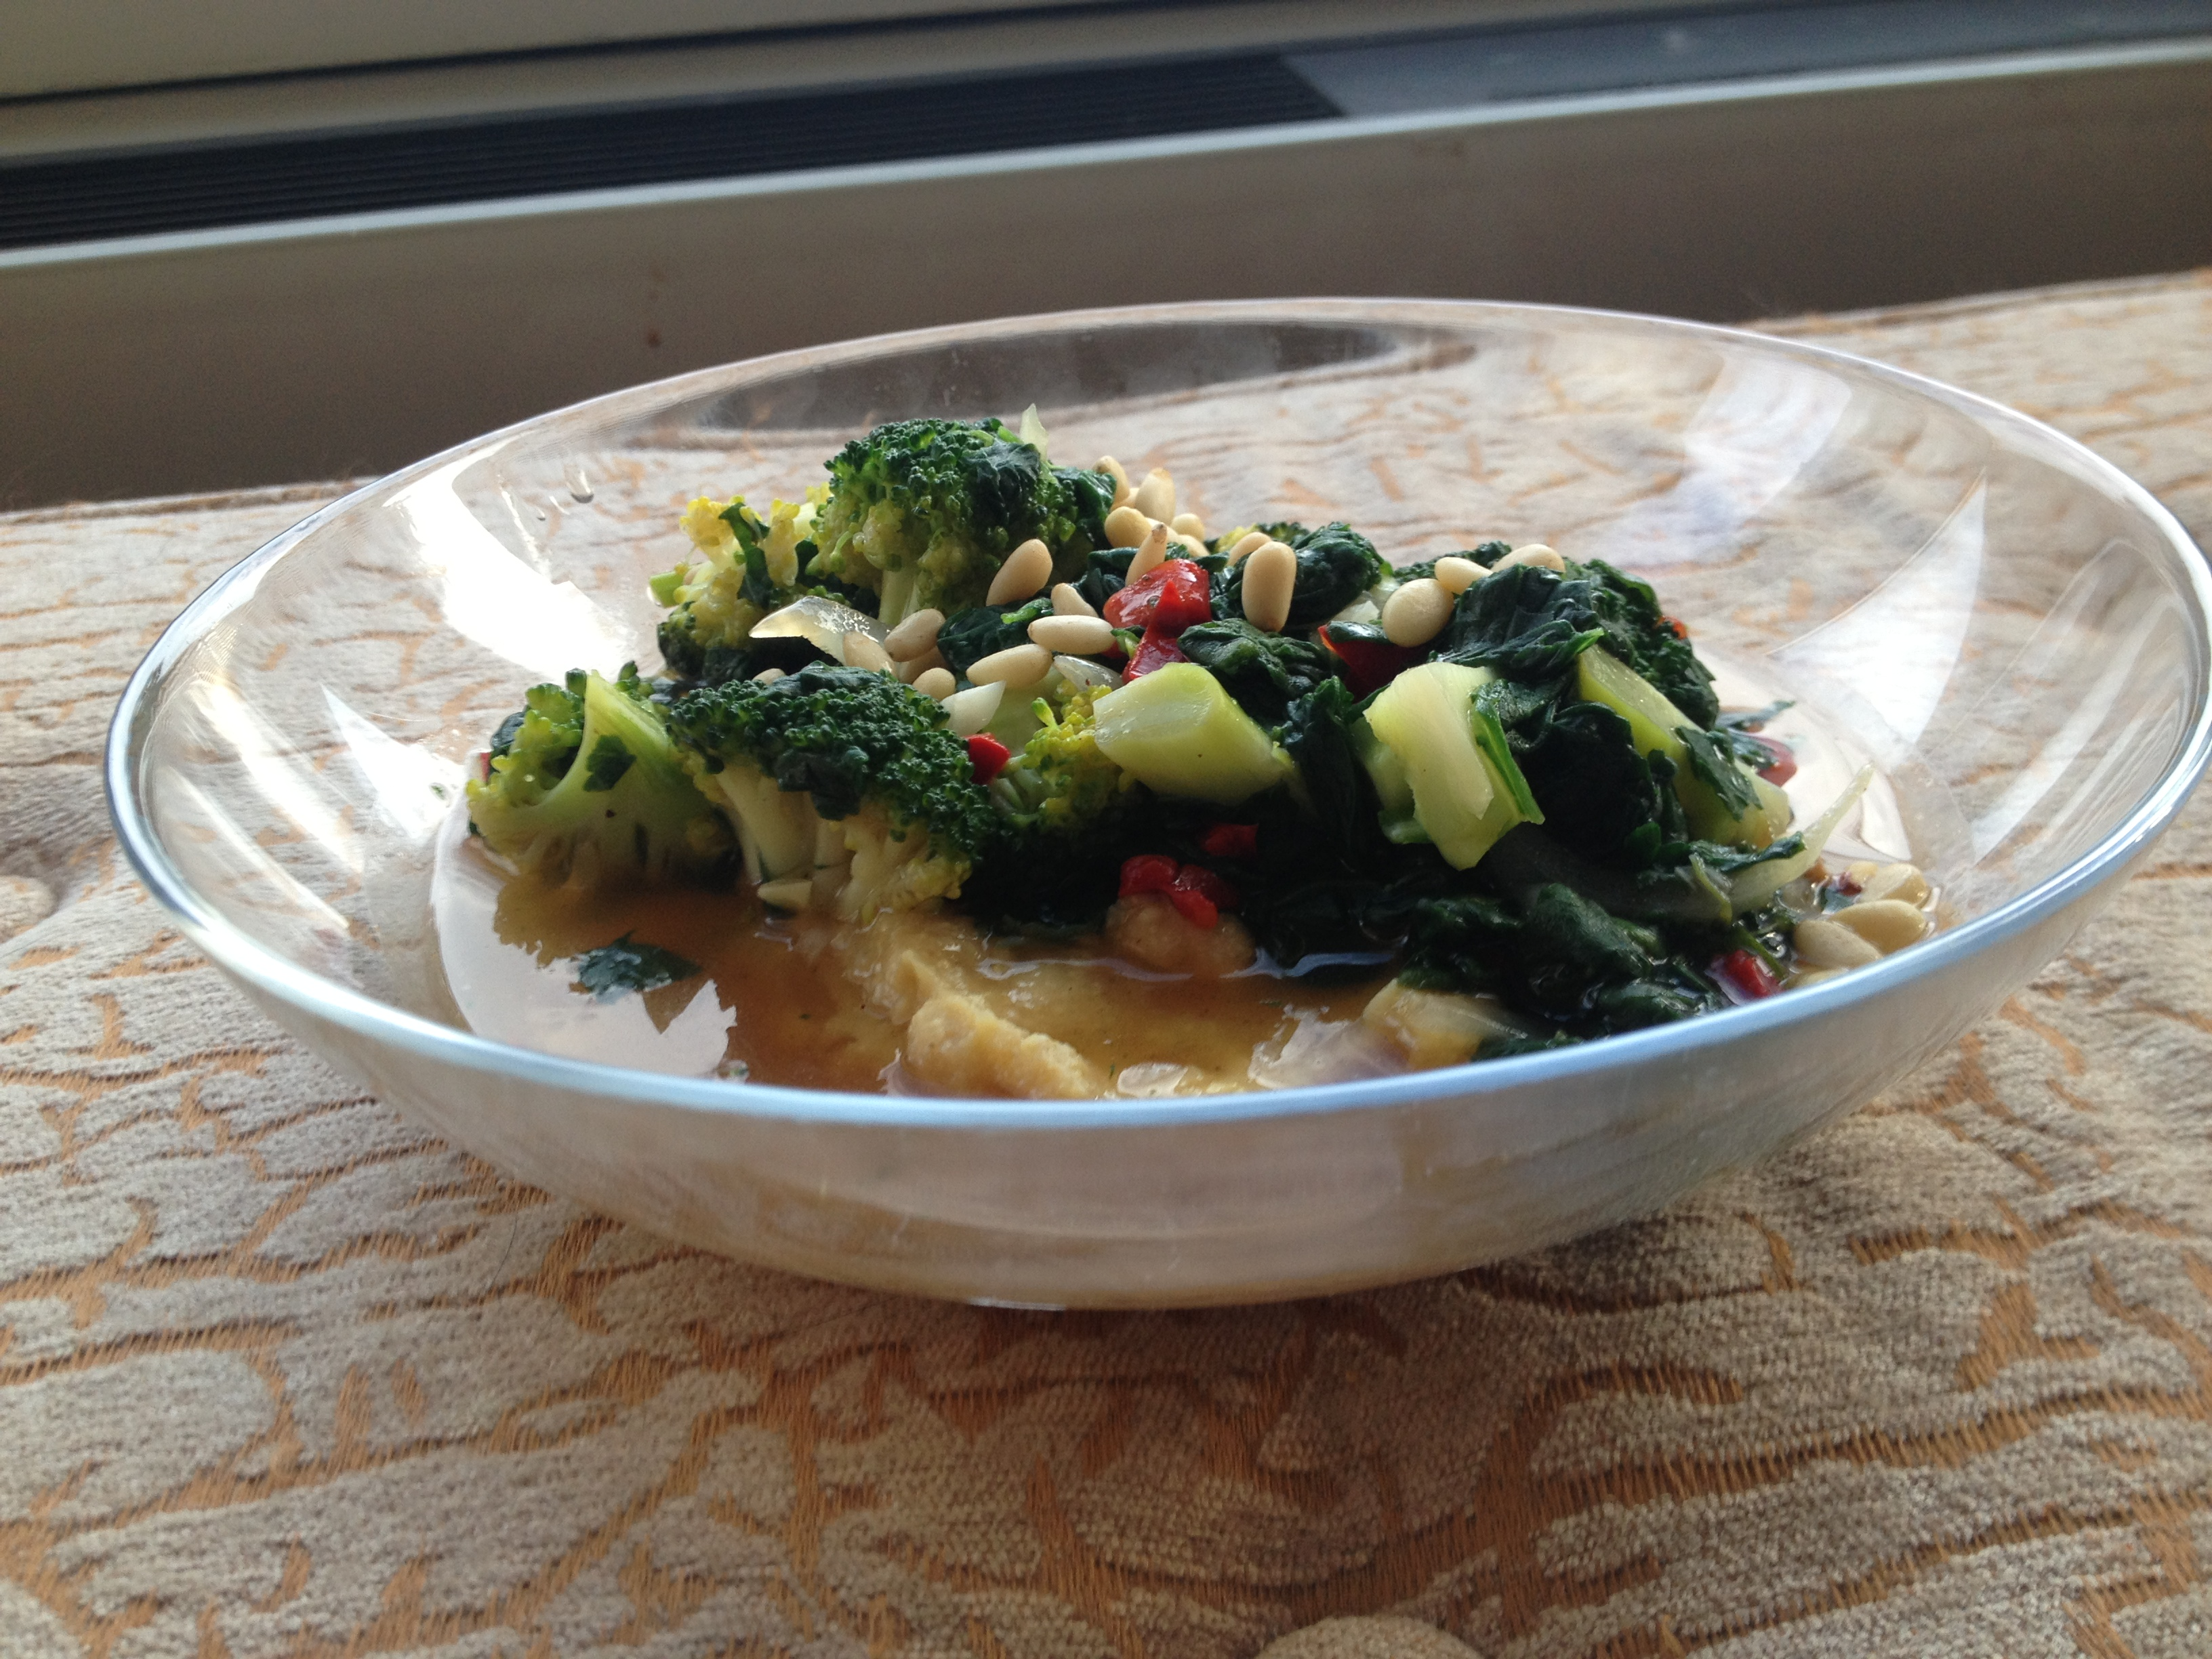 ... Lunch for 6 December, 2013: Polenta with Broccoli and Spinach Mix